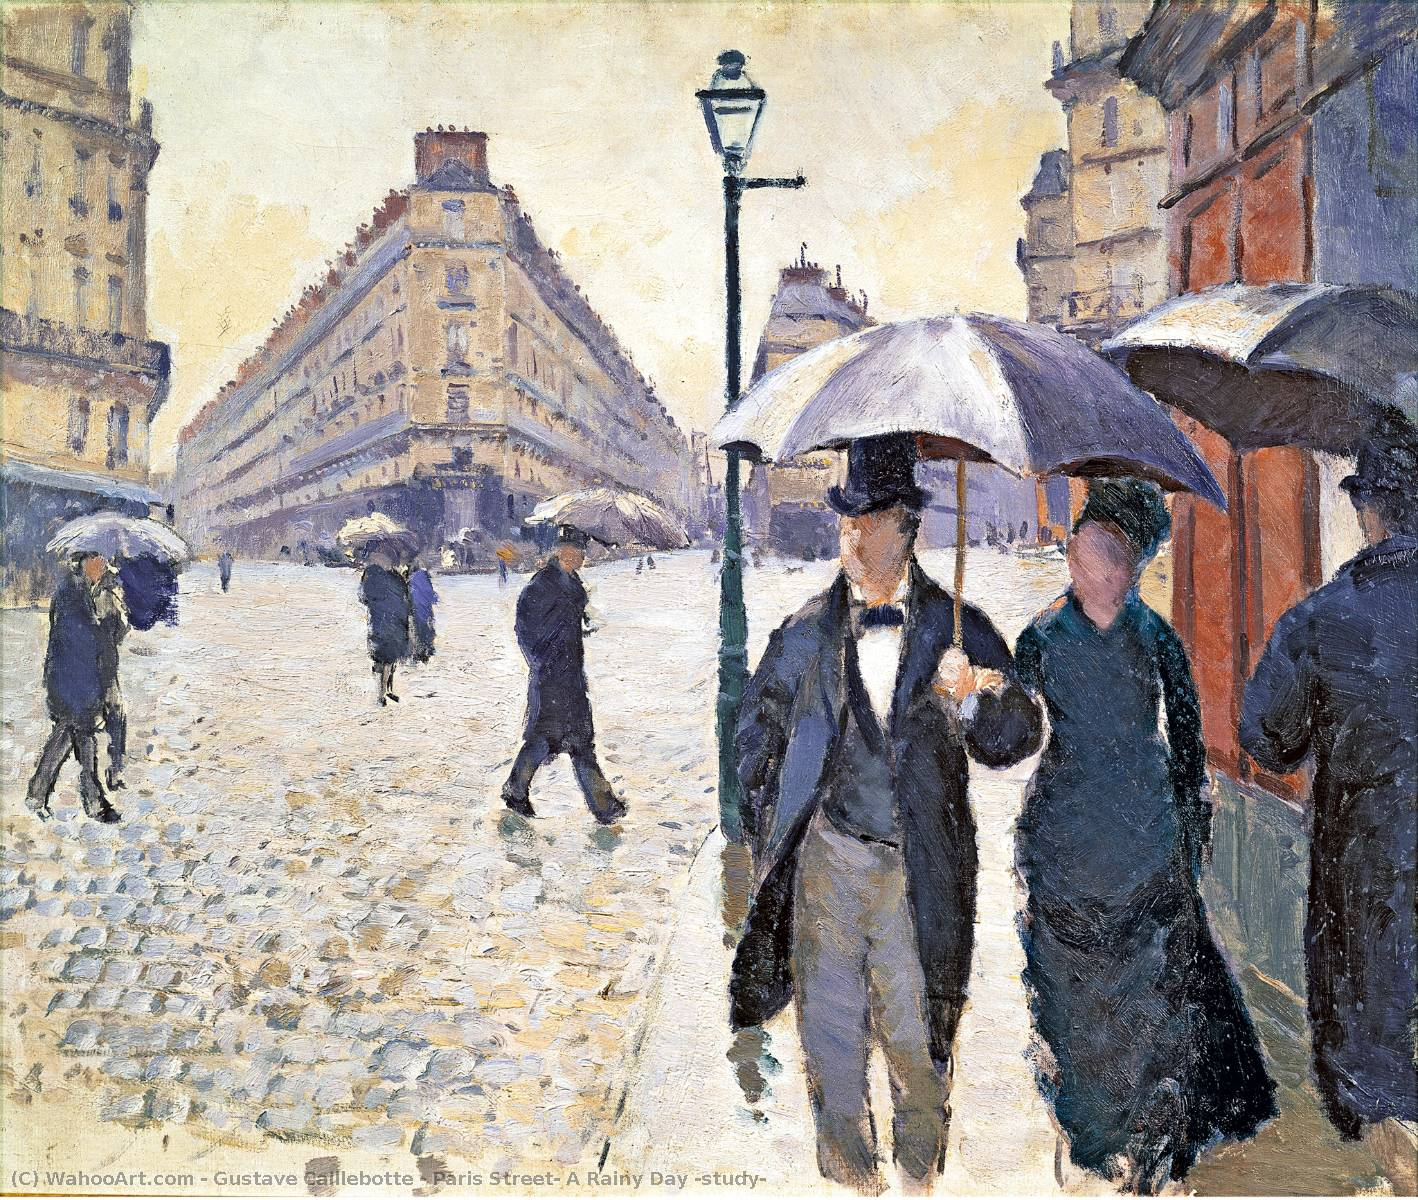 Paris Street: A Rainy Day (study), Oil On Canvas by Gustave Caillebotte (1848-1894, France)